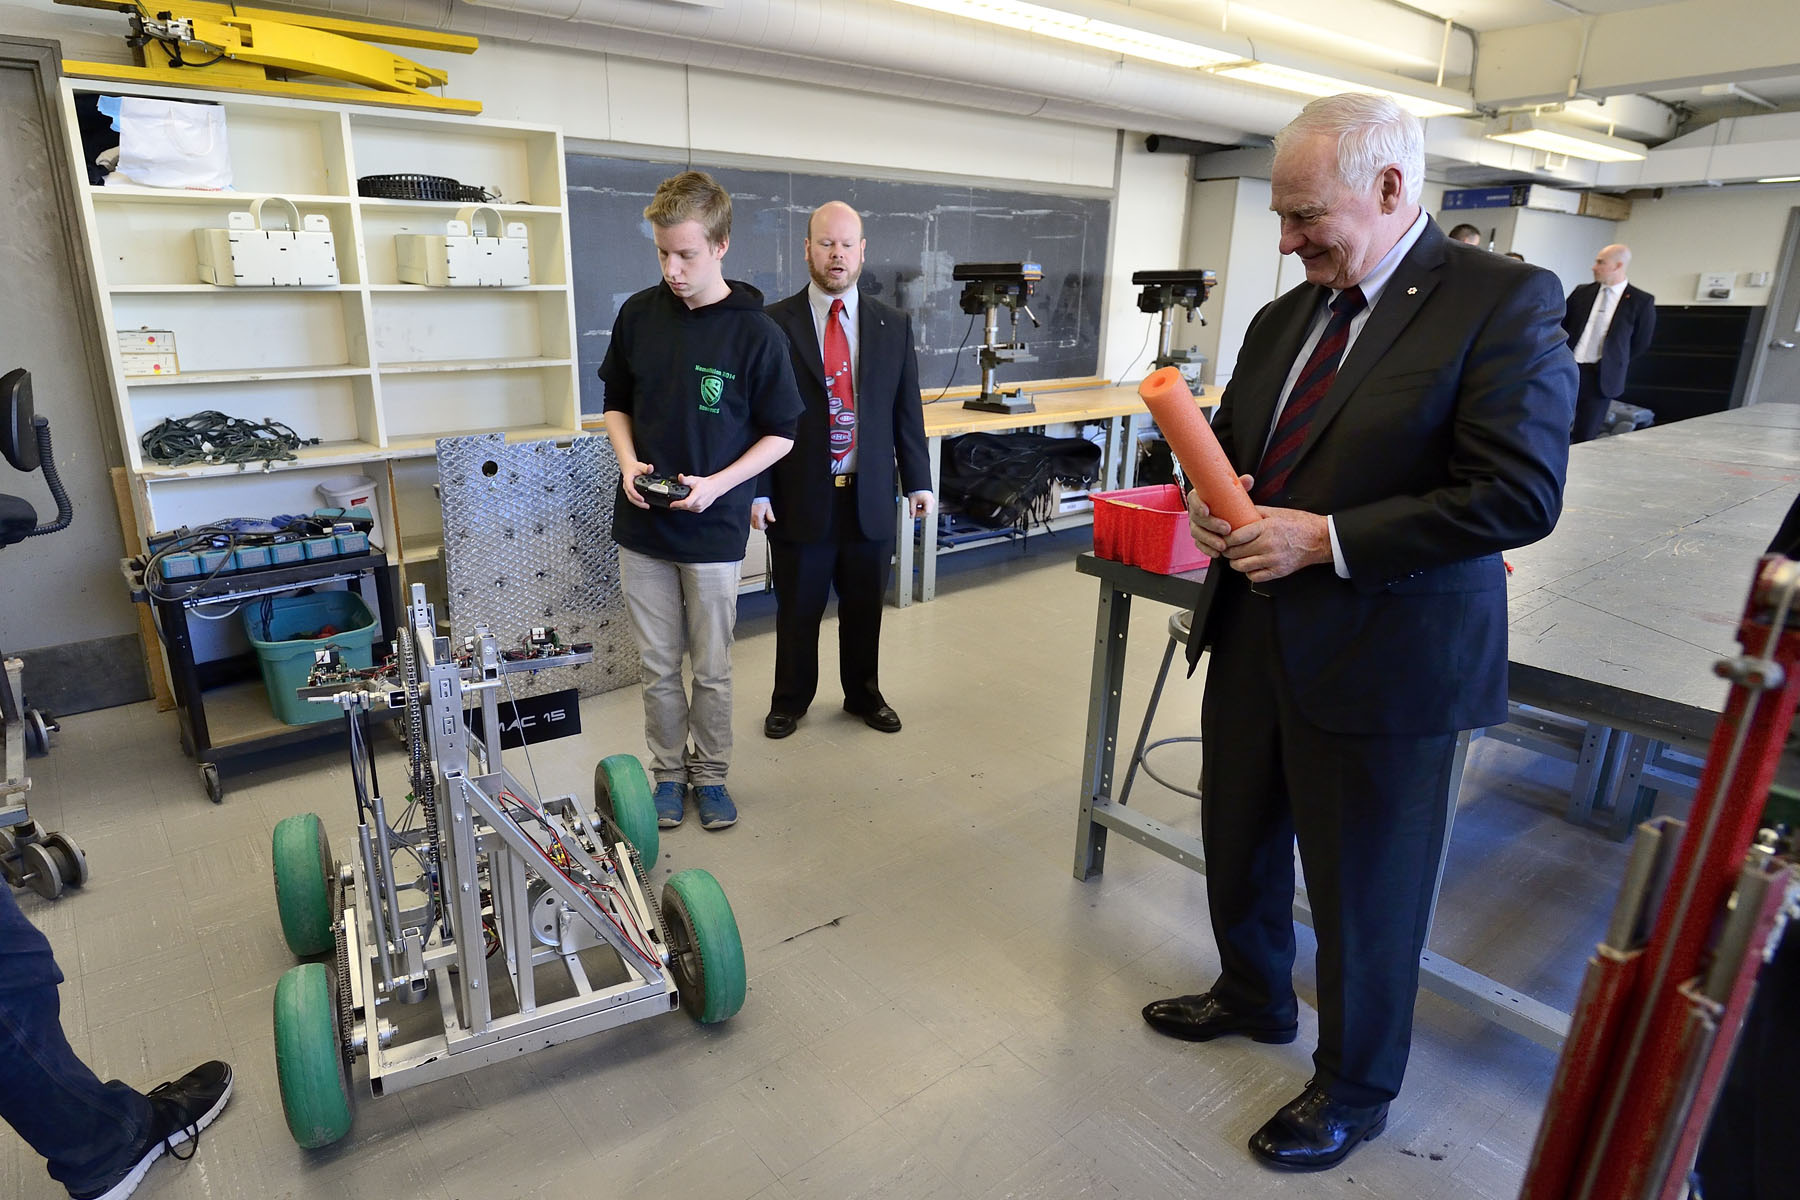 During this visit, His Excellency also stopped by the robotics room at Macdonald High School.